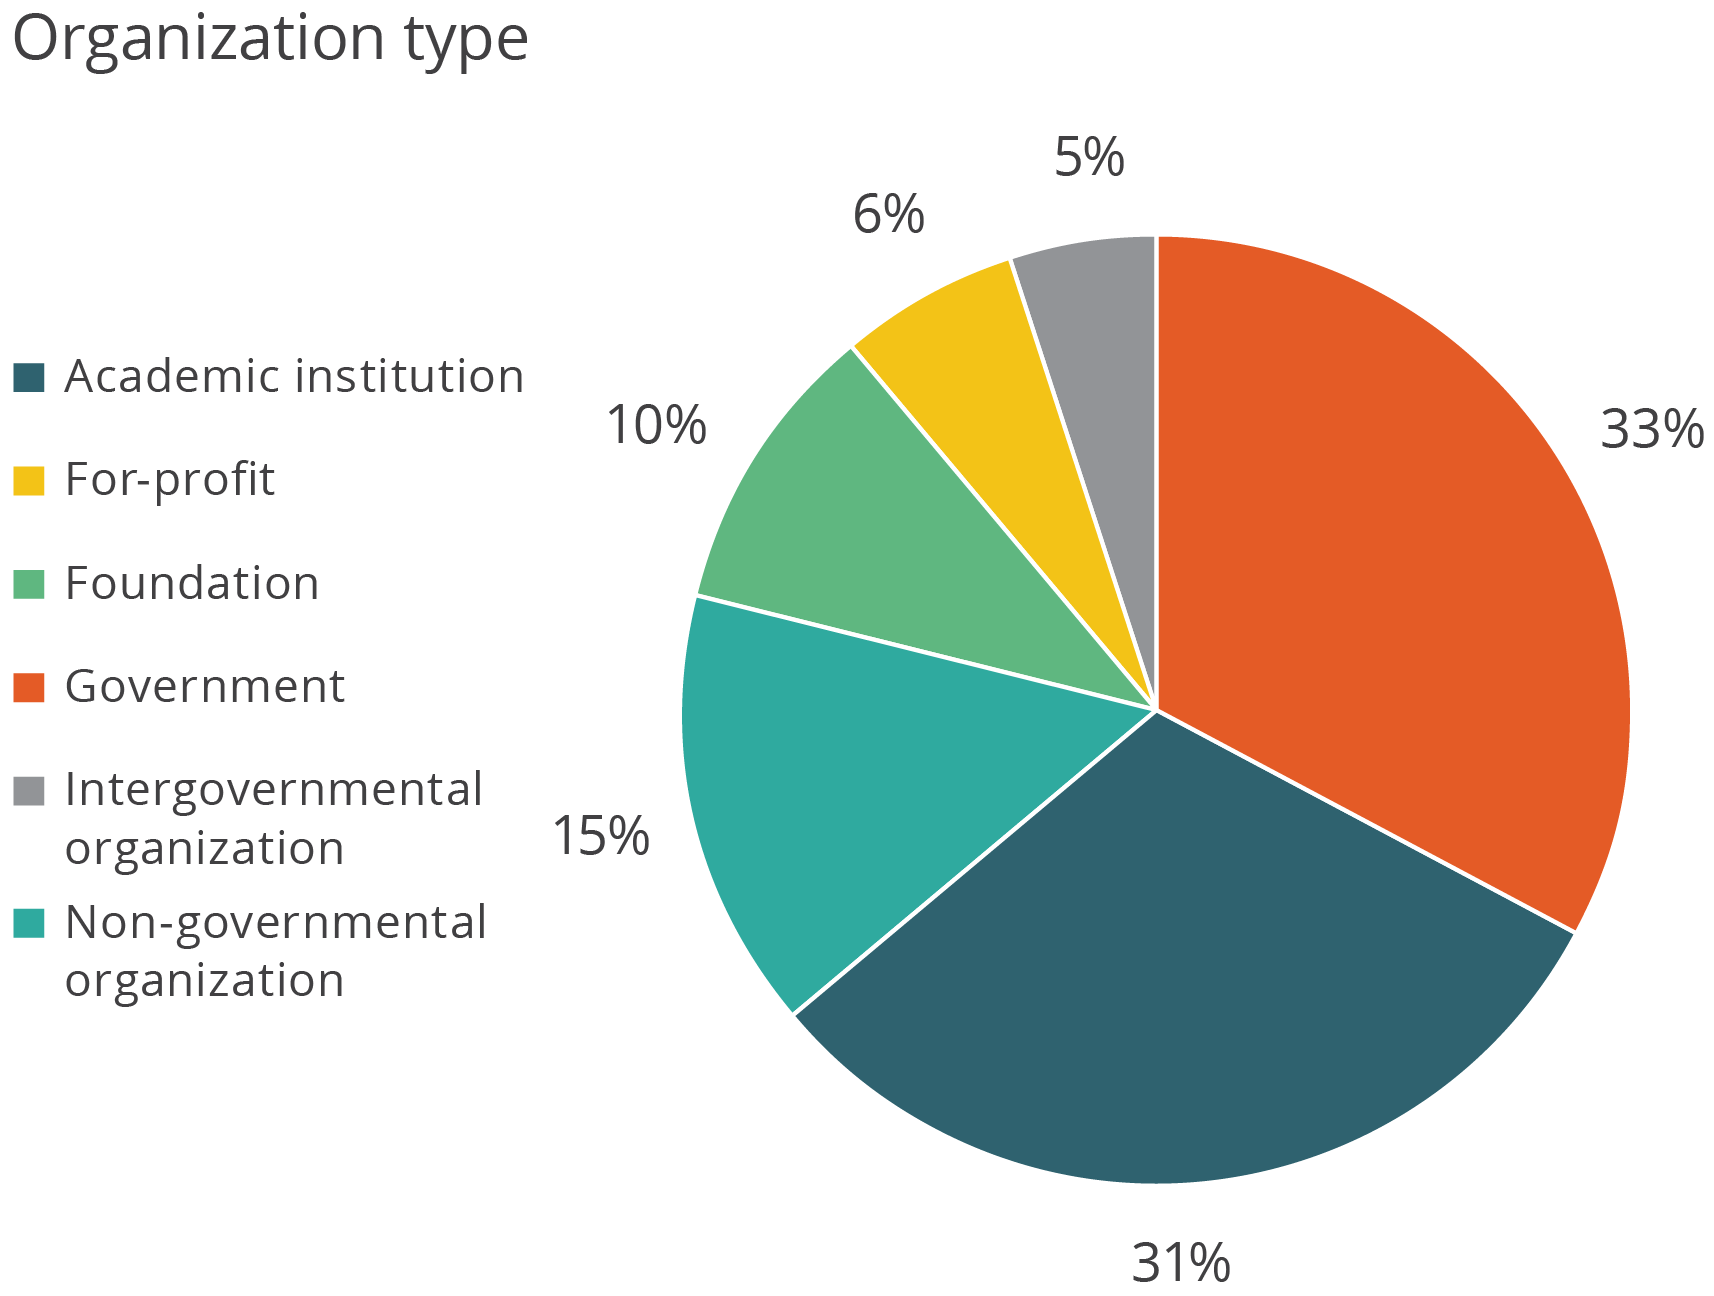 Pie graph of participant profiles: academic institution: 31%, for profit: 6%, Foundation:10%, Intergovernmental org:5%, NGO: 15%